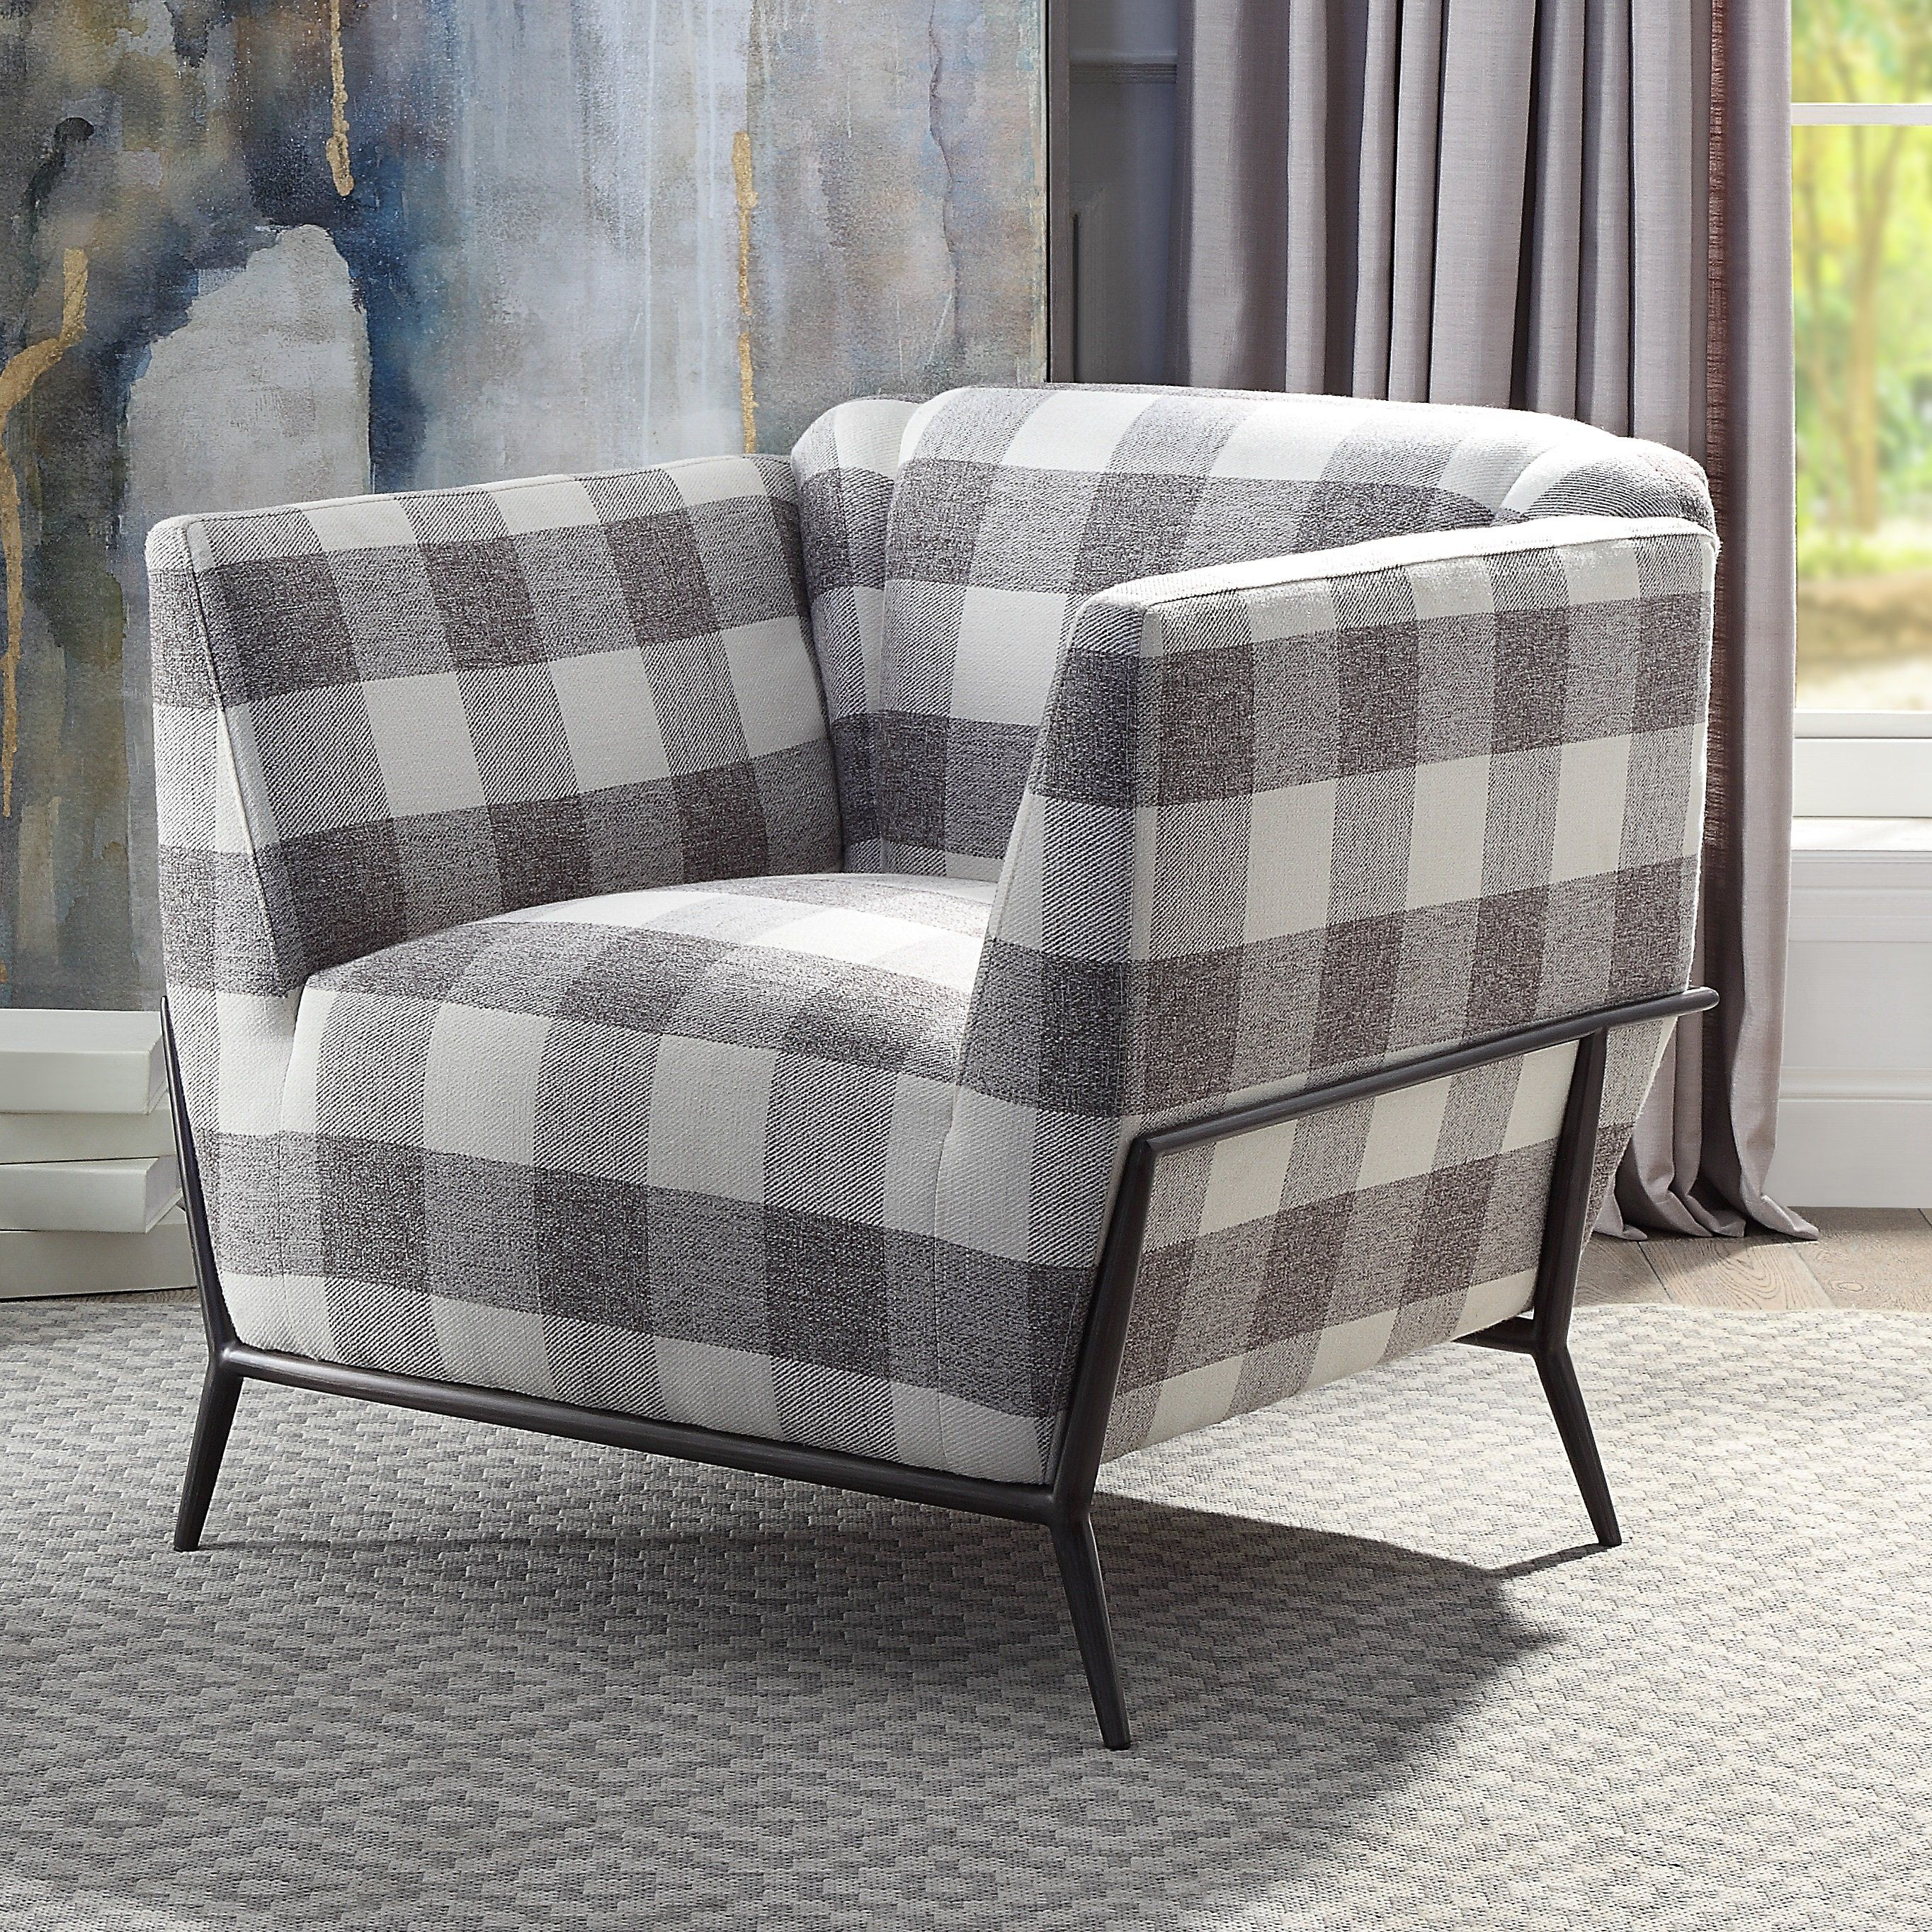 Gracie Oaks Large Plaid Print Arm Chair In 2020 Patterned Chair